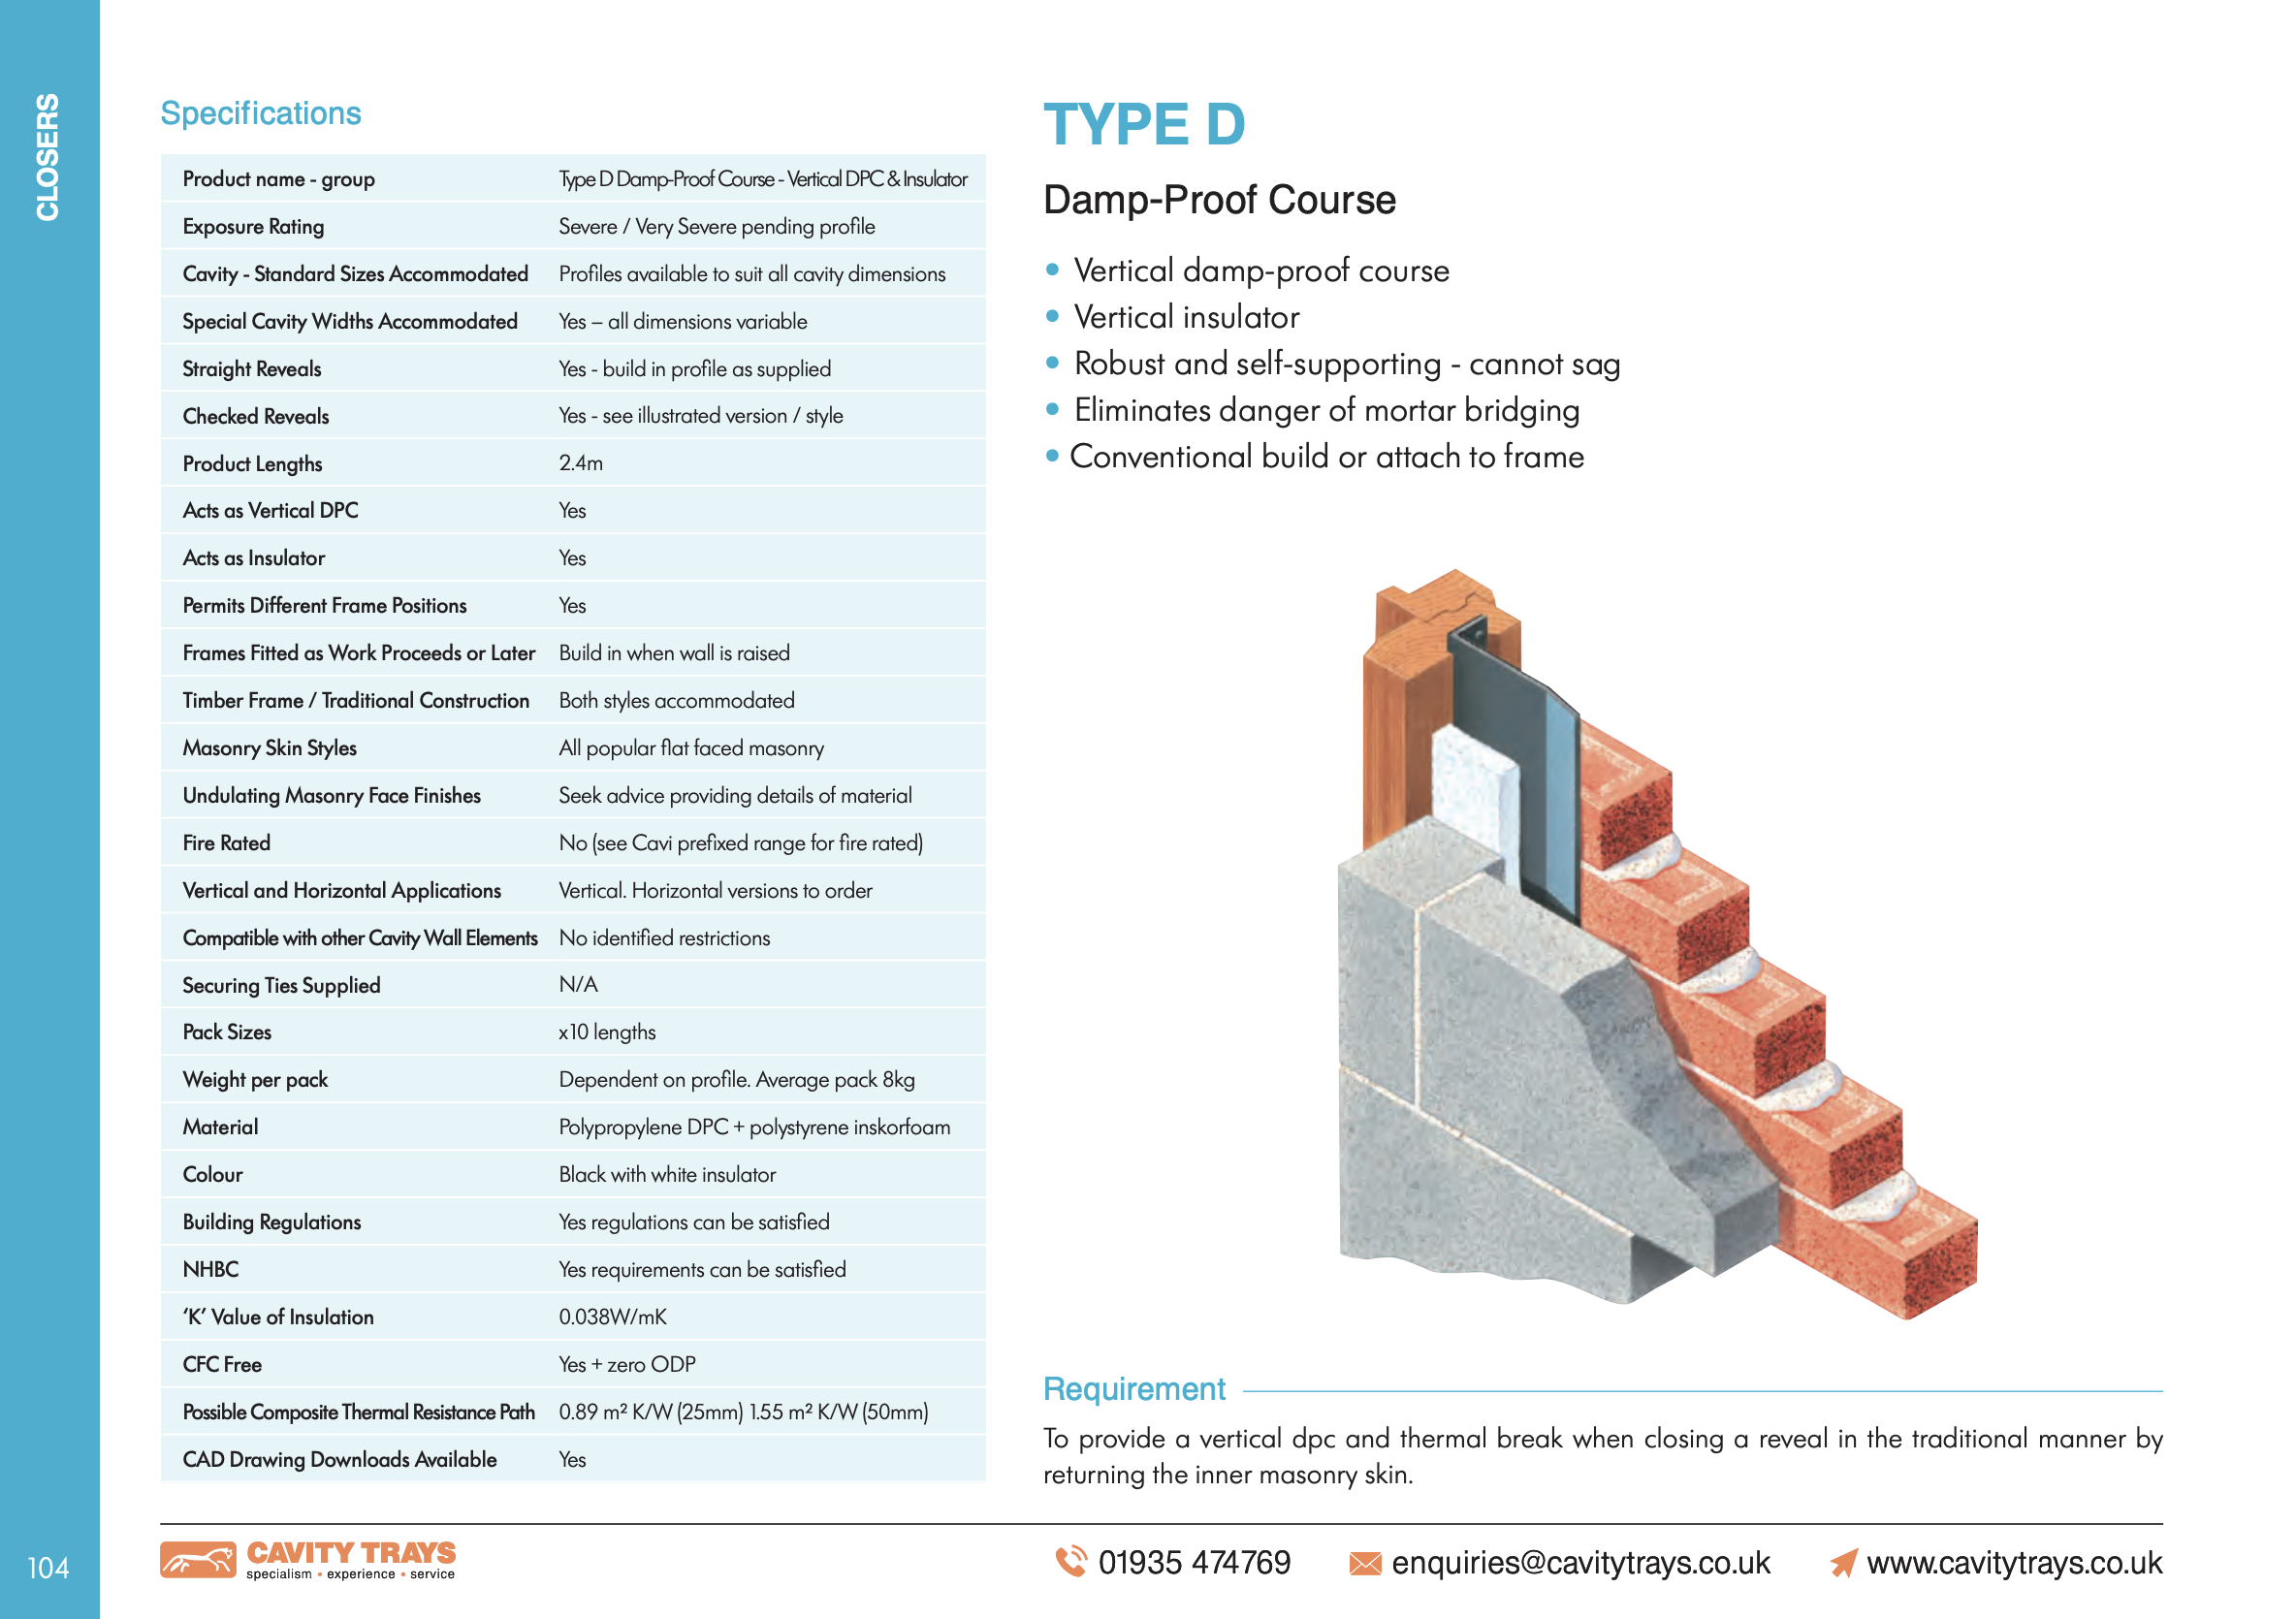 Type D Damp-Proof Course Datasheet